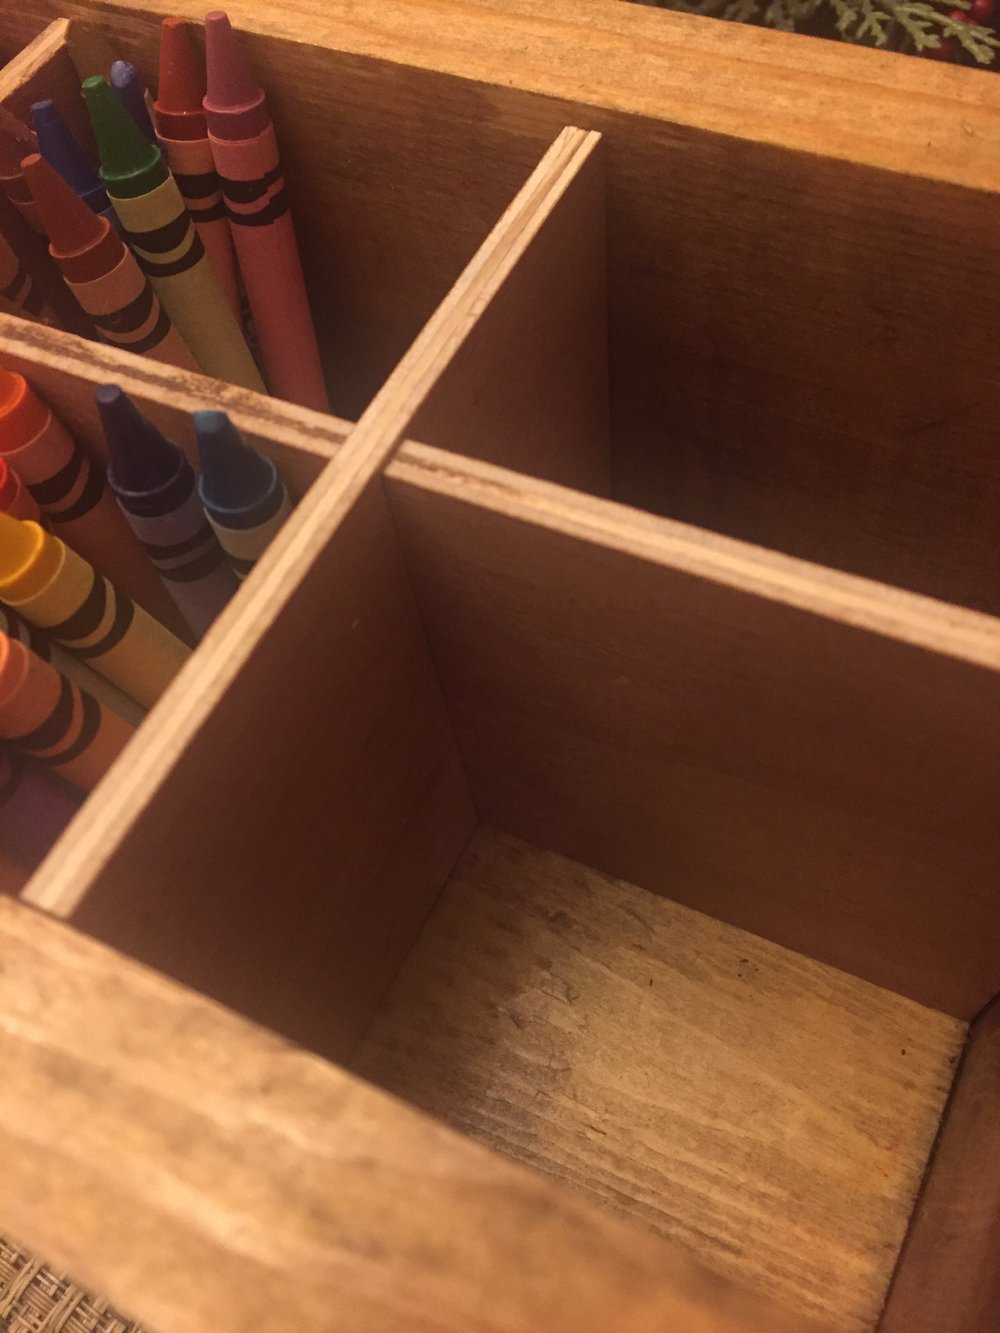 crayon-box-section.jpg